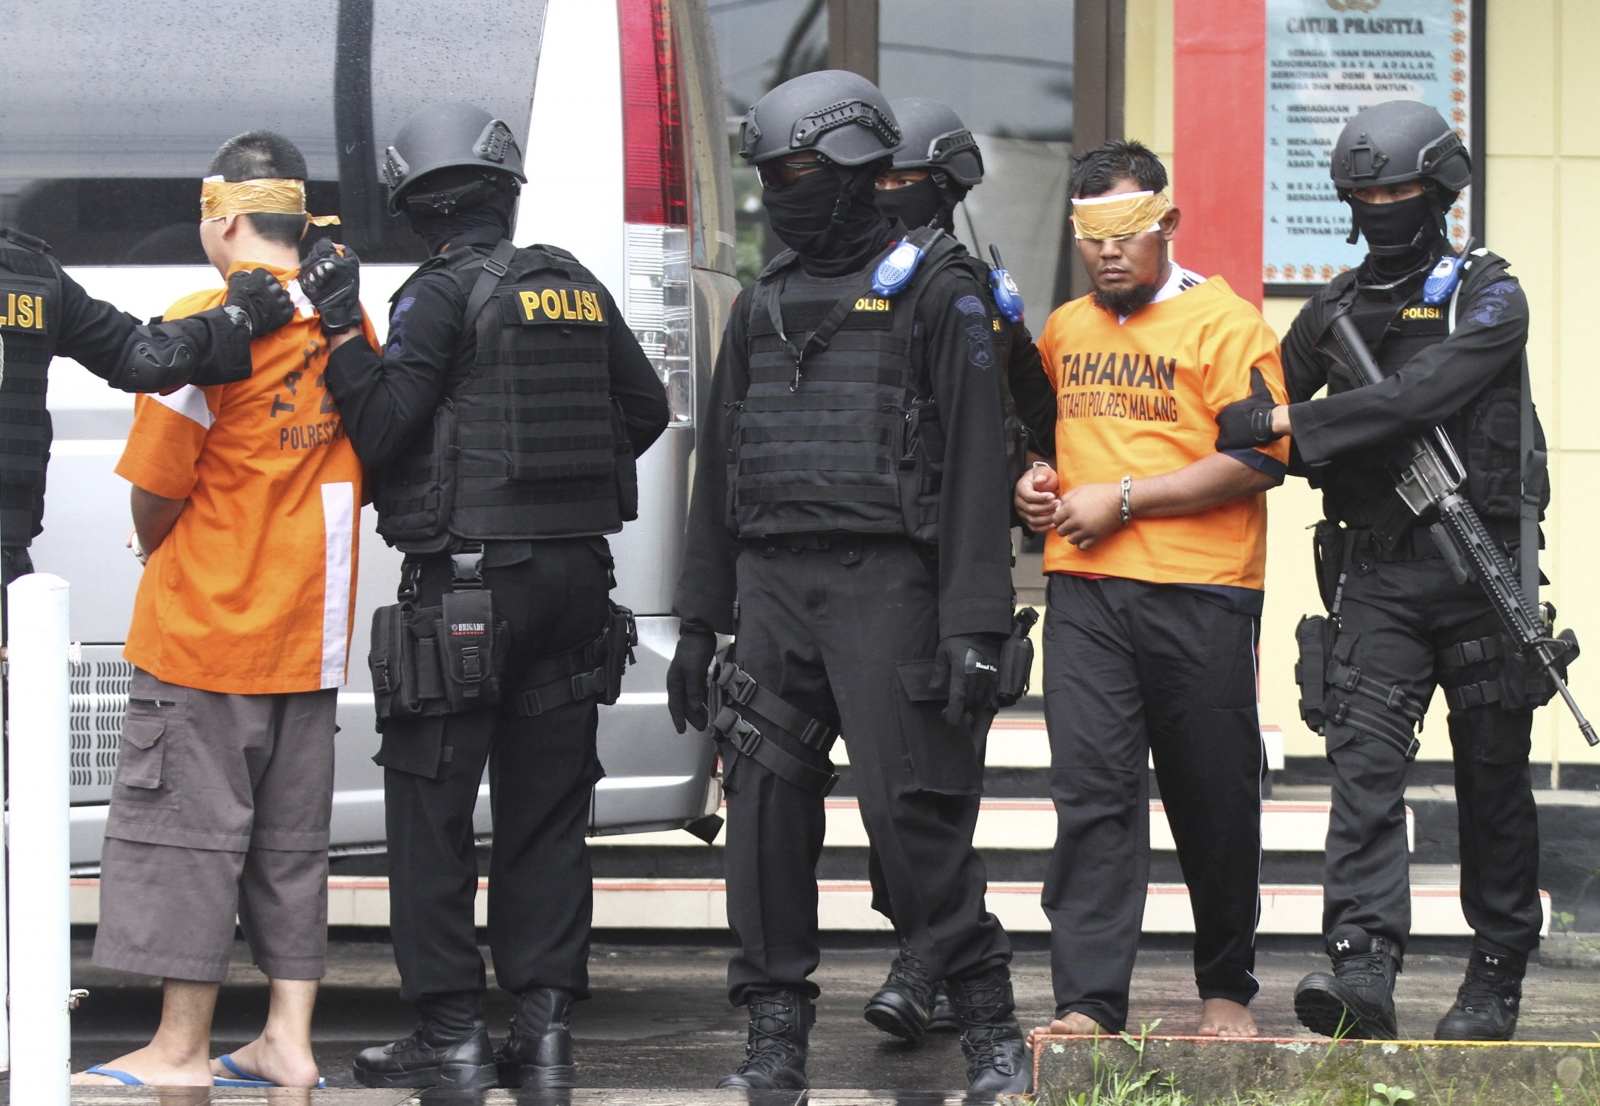 Indonesia Police Detain 140 Men in Gay Club